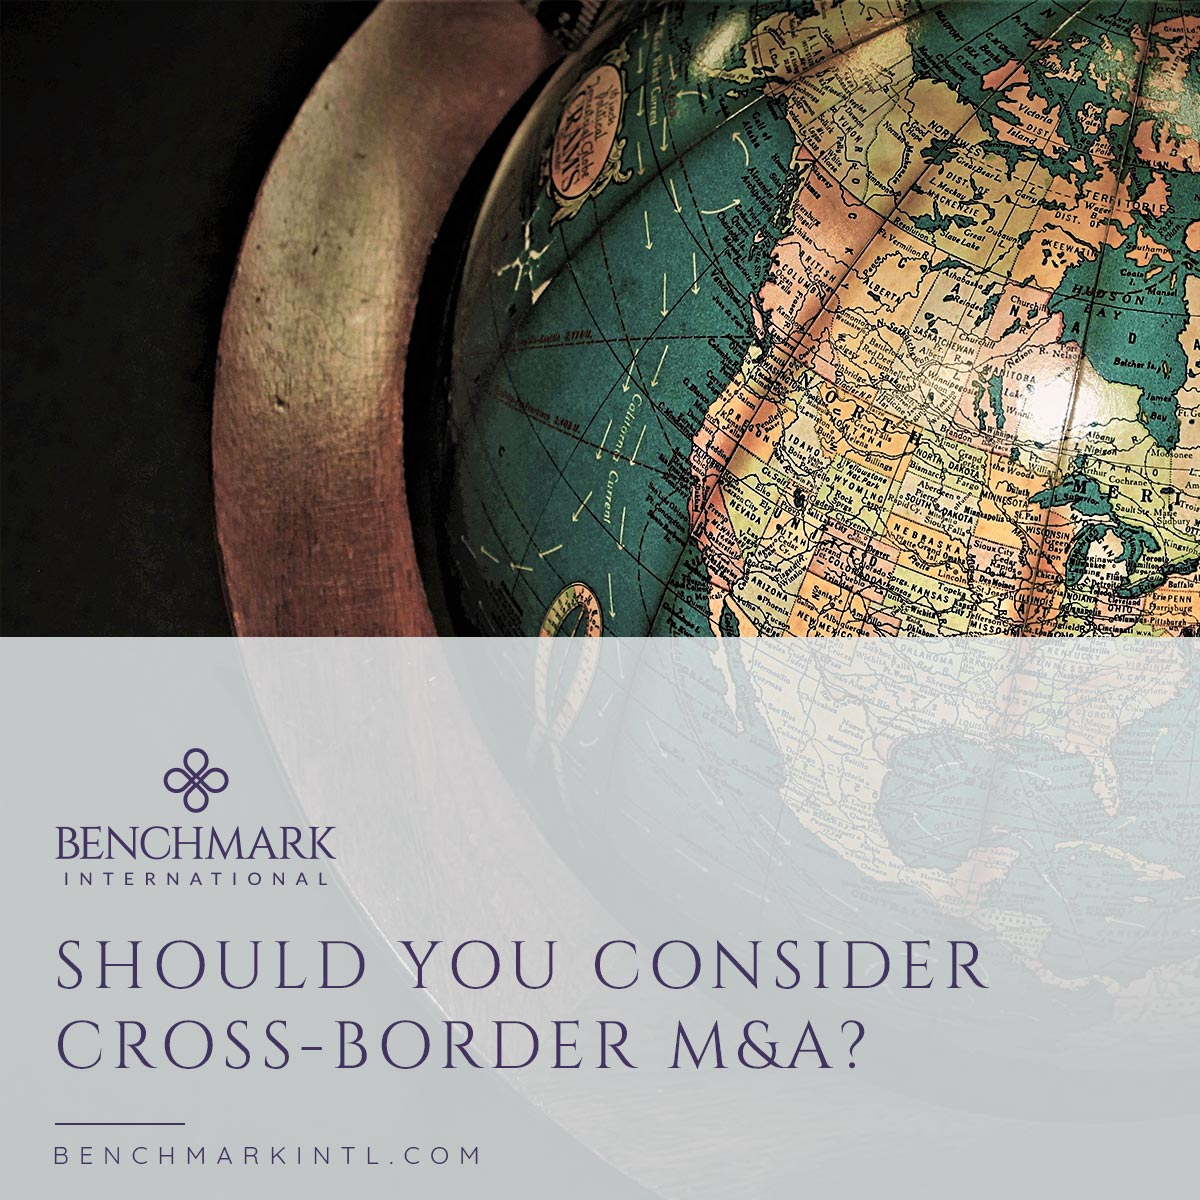 Should_You_Consider_Cross_Boarder_M&A_Social-1